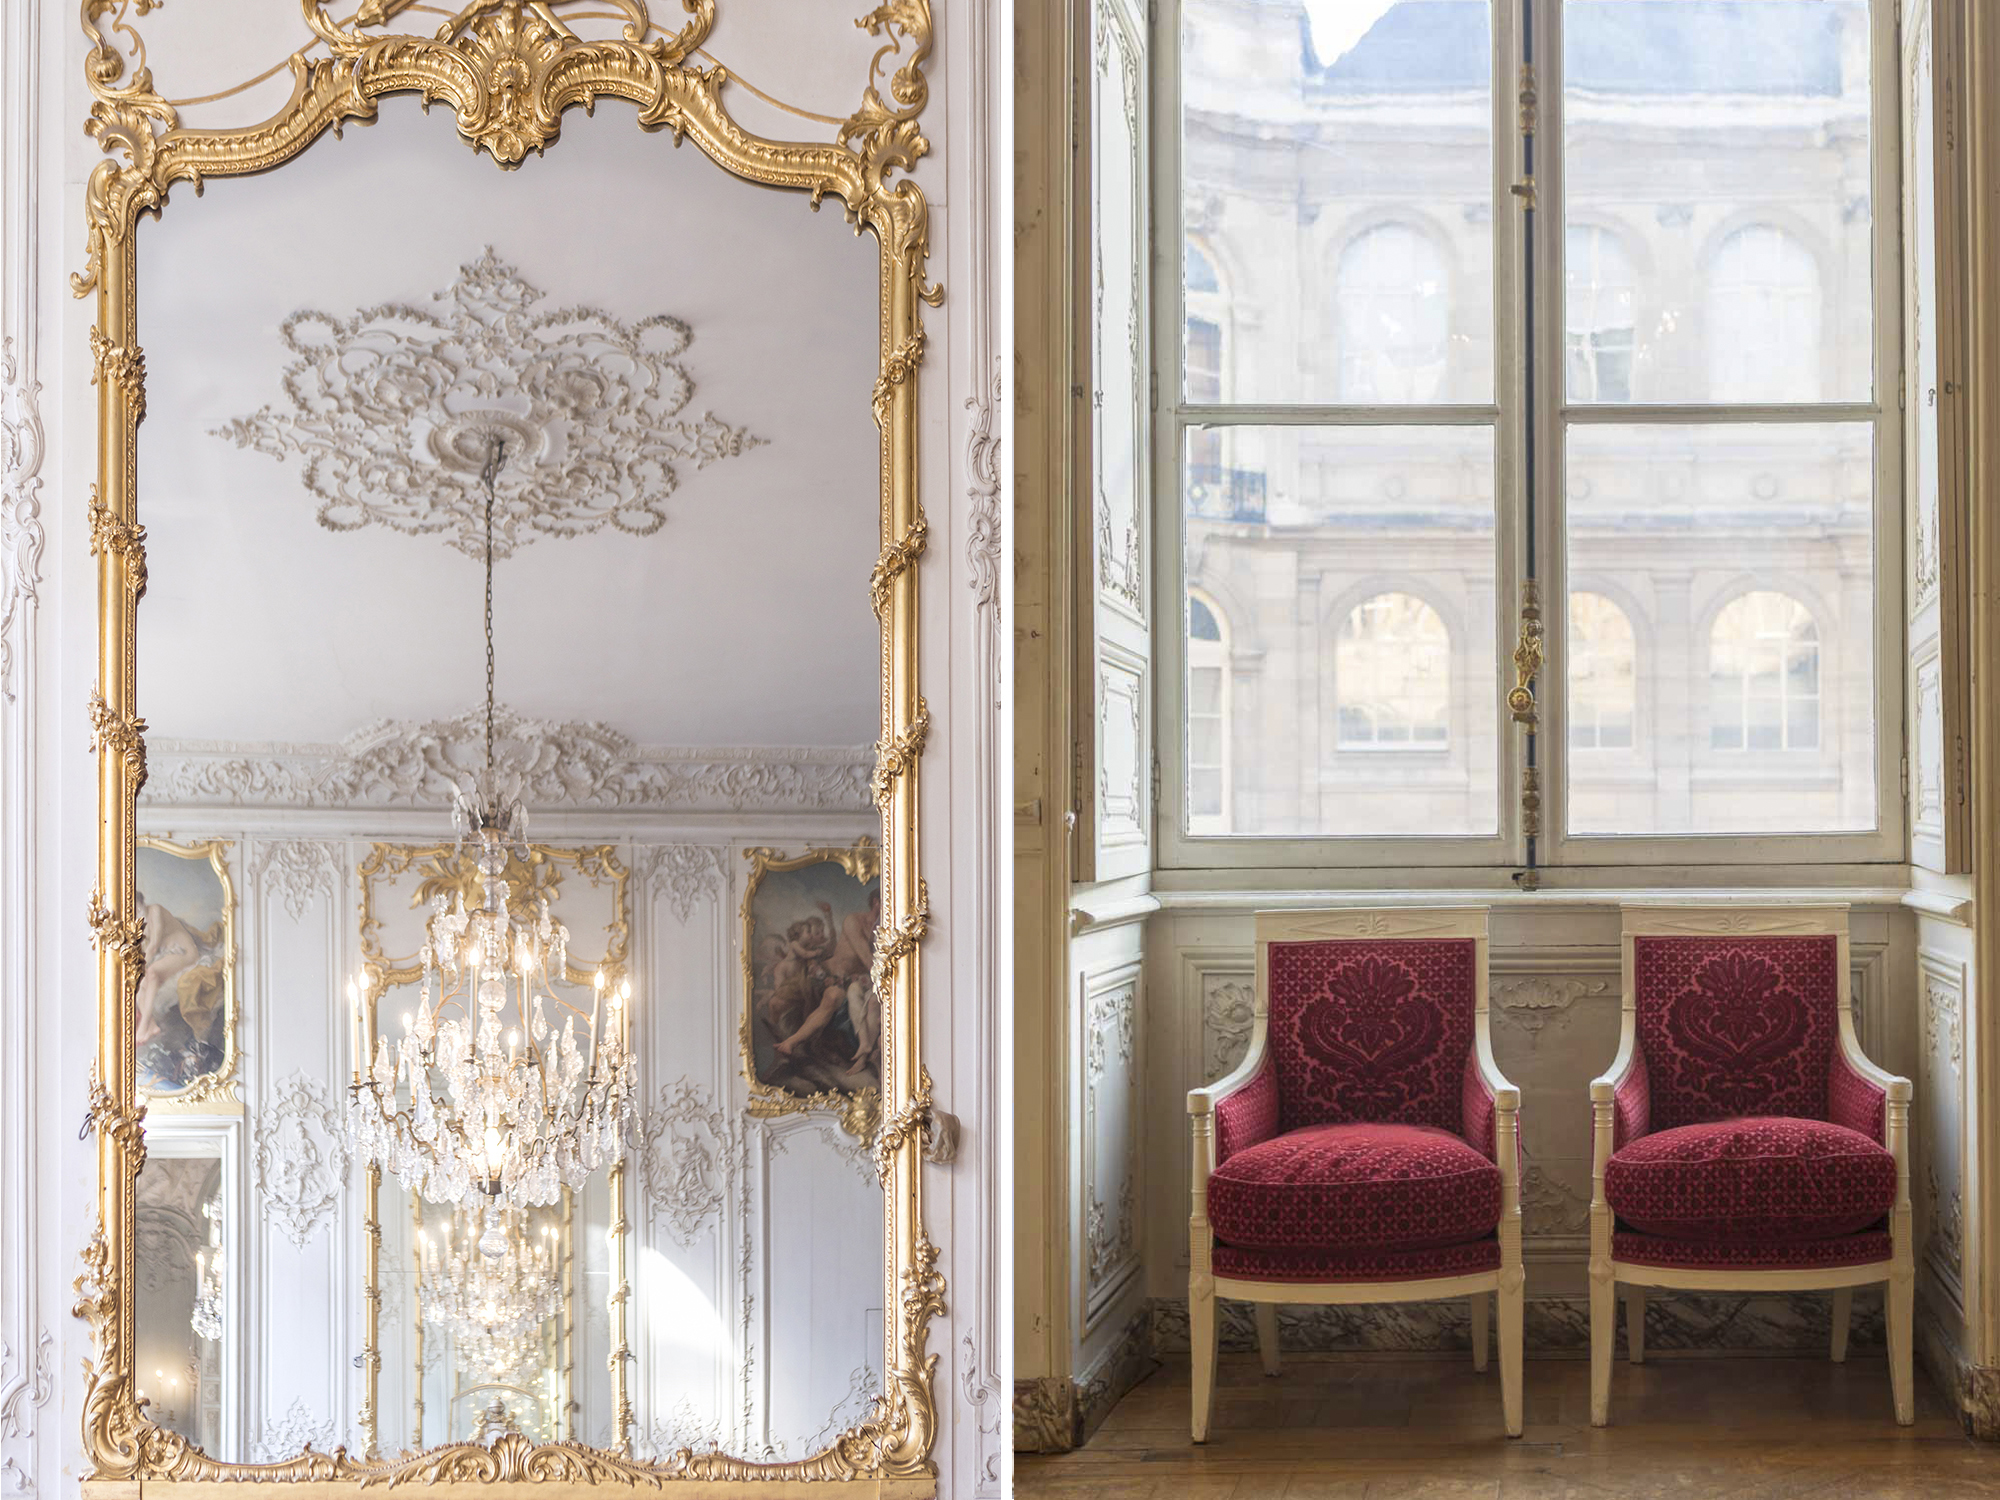 Chandeliers and Chairs.jpg